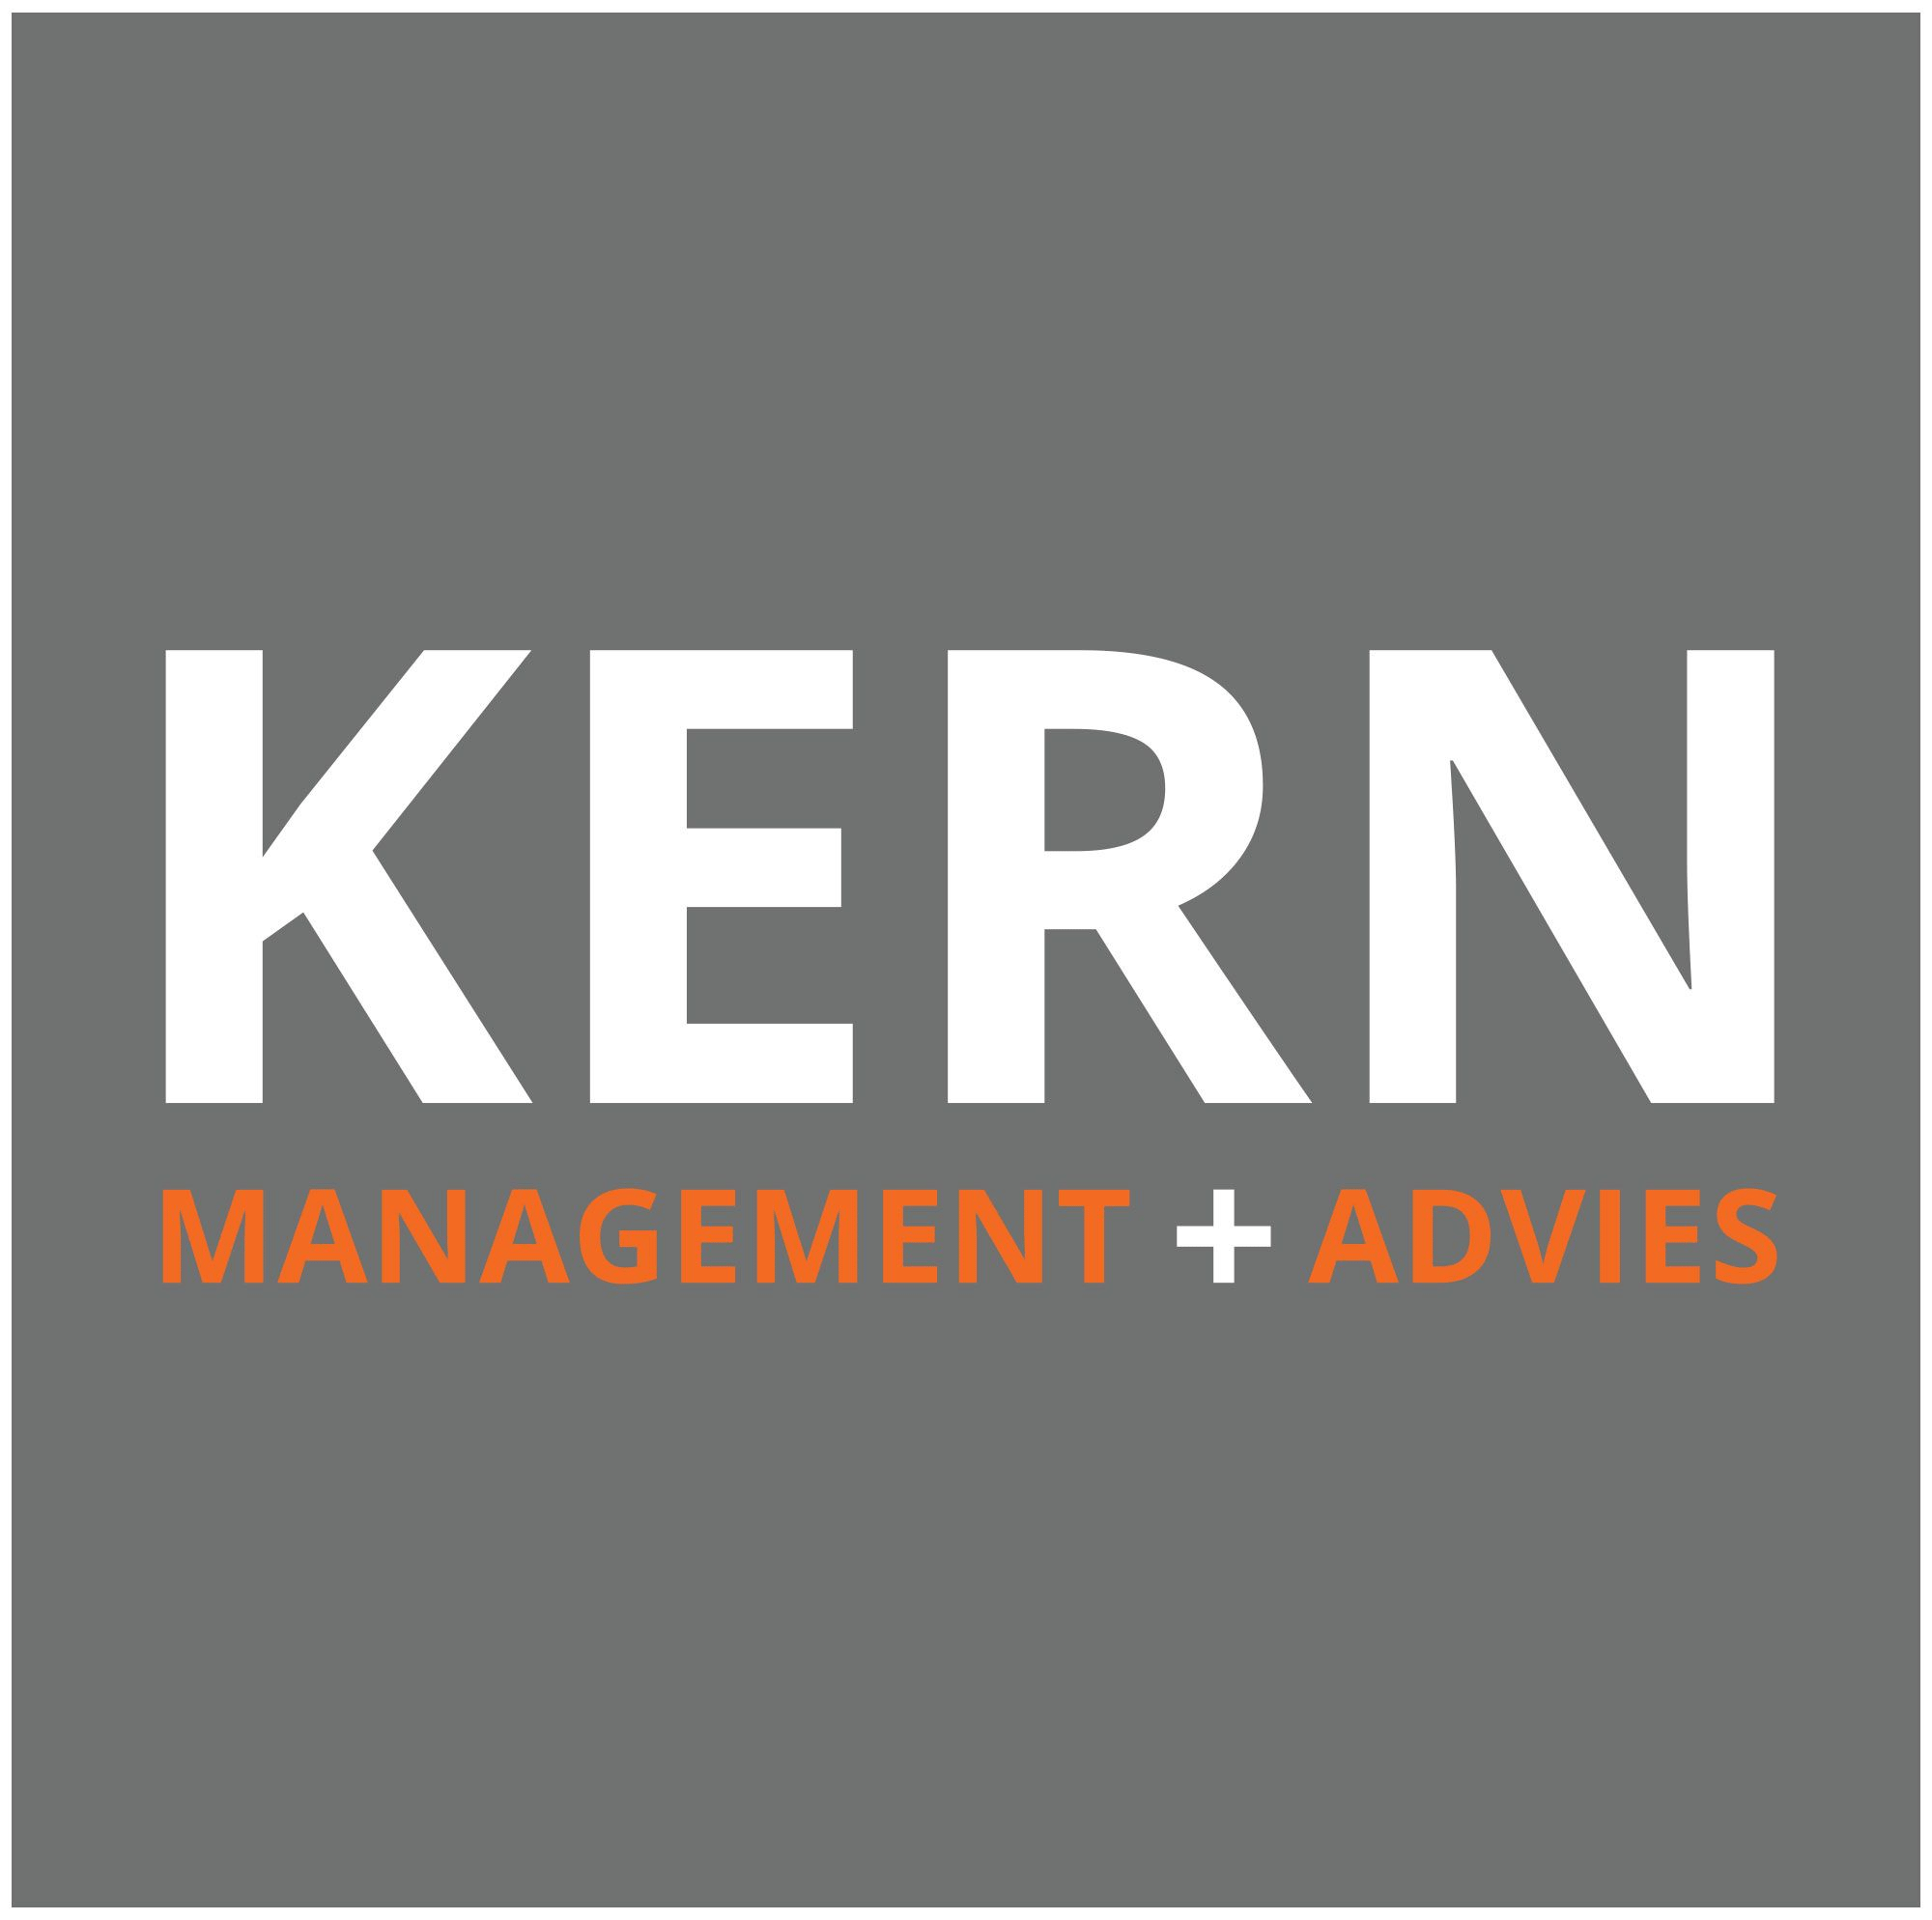 KERN MANAGEMENT + ADVIES